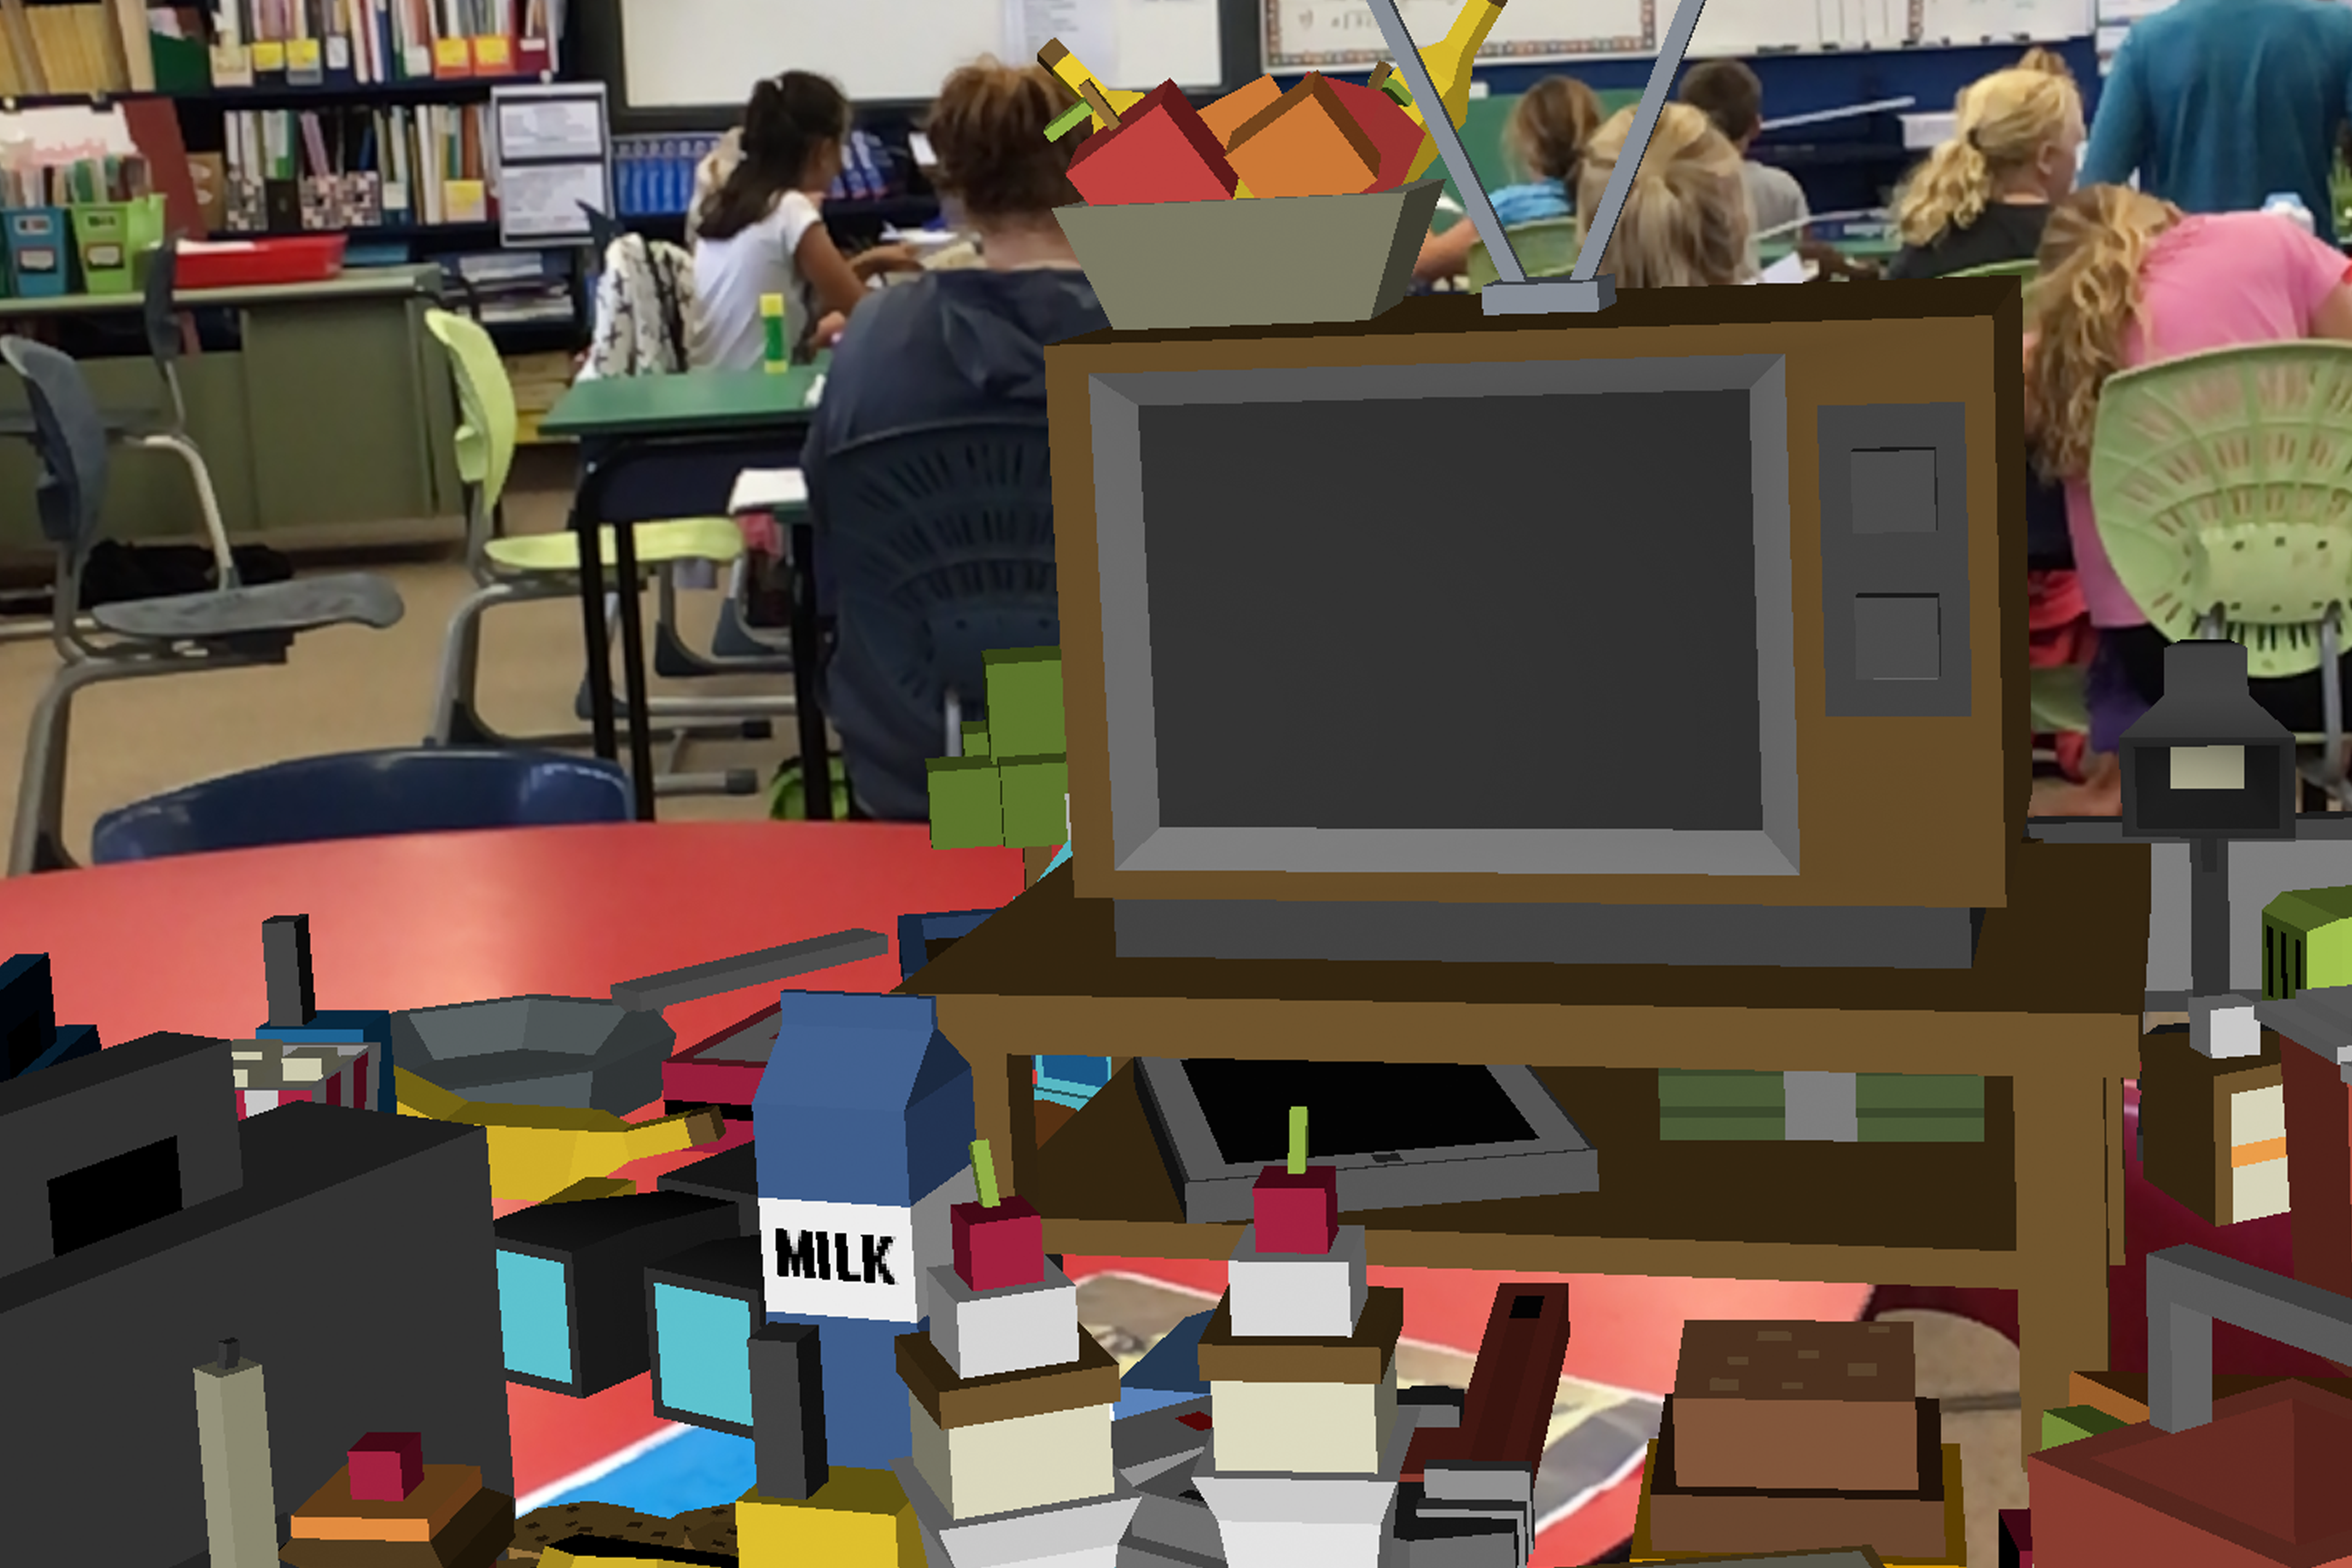 Augmented Reality in classrooms